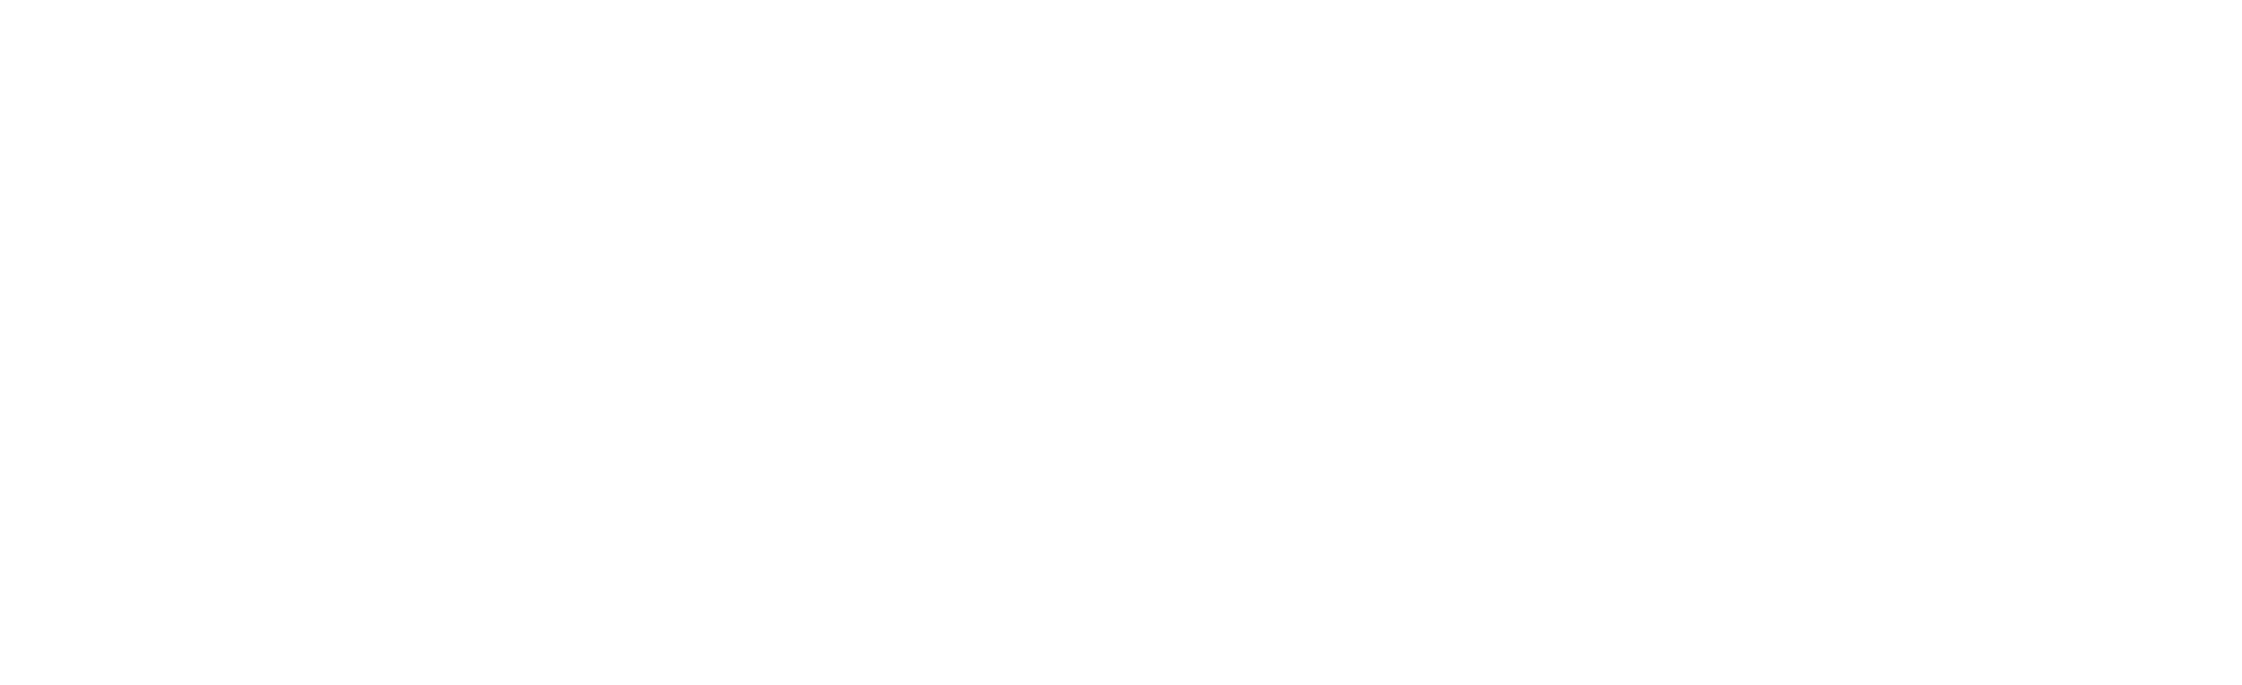 jd_logo_2018_large_white